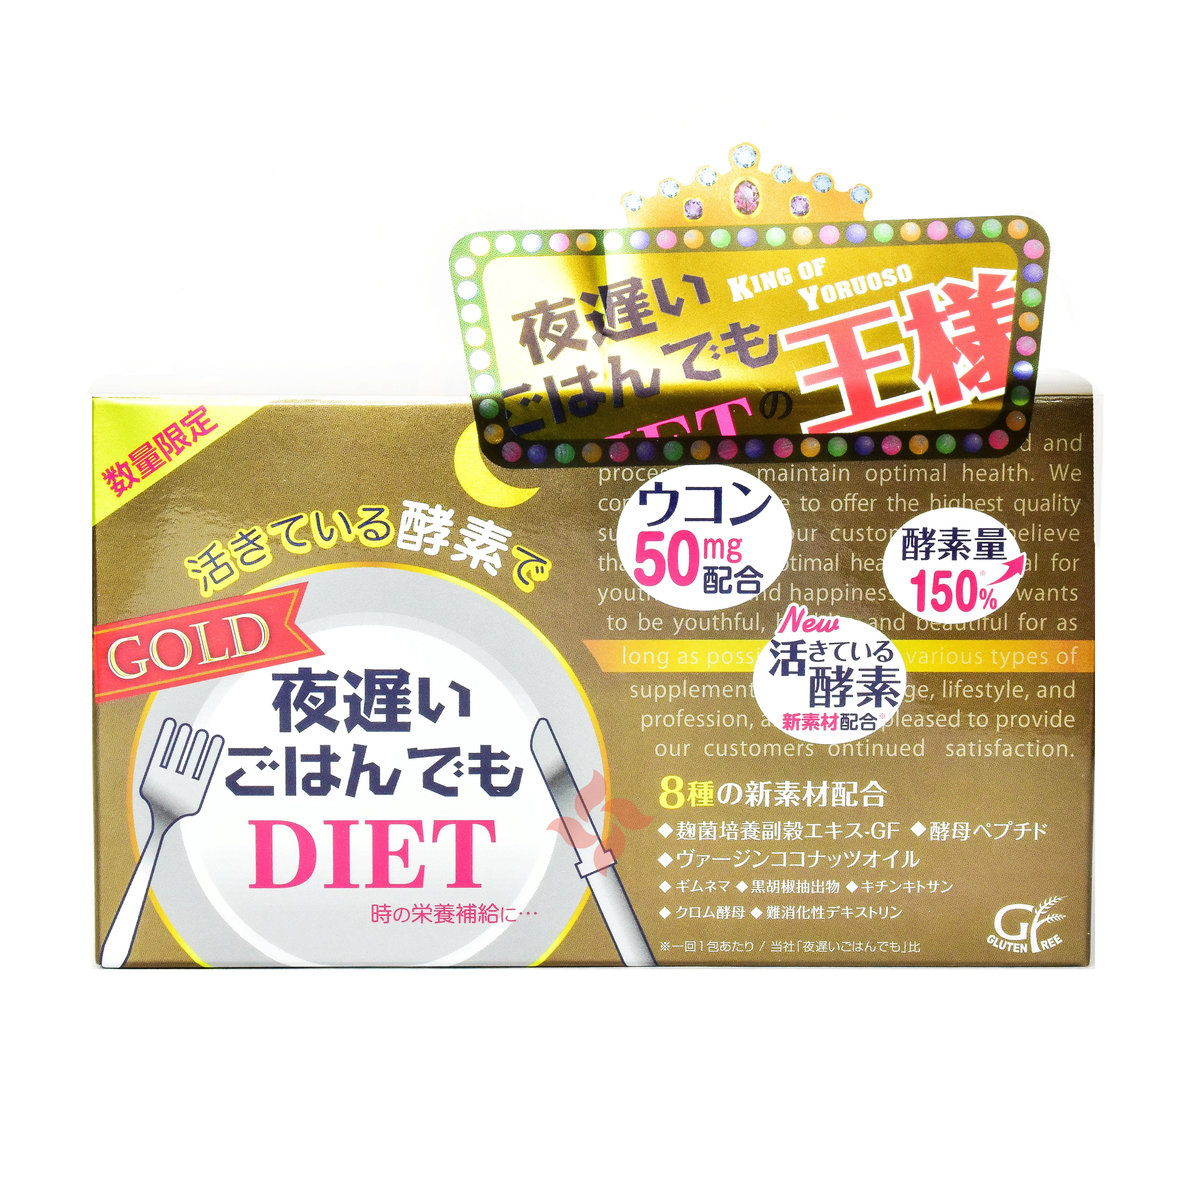 DIET GOLD Late Night Snack Supplement (30 Packets) (4560264293892/ 4560264293526)